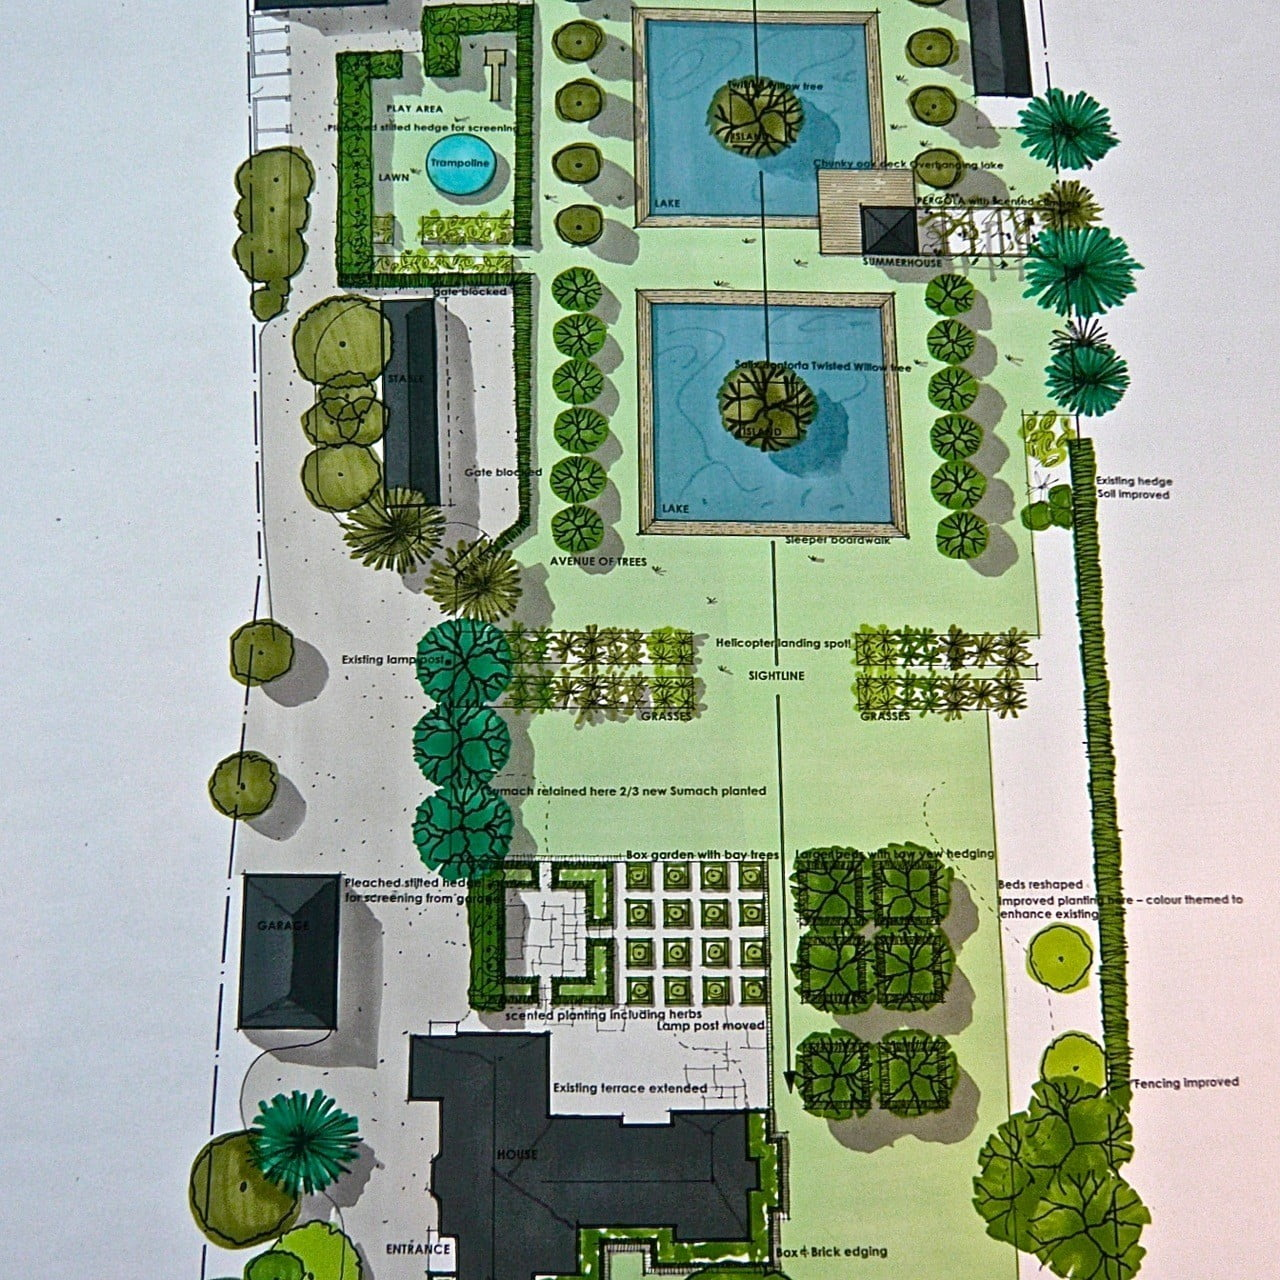 This is the plan for this large garden in Berkshire